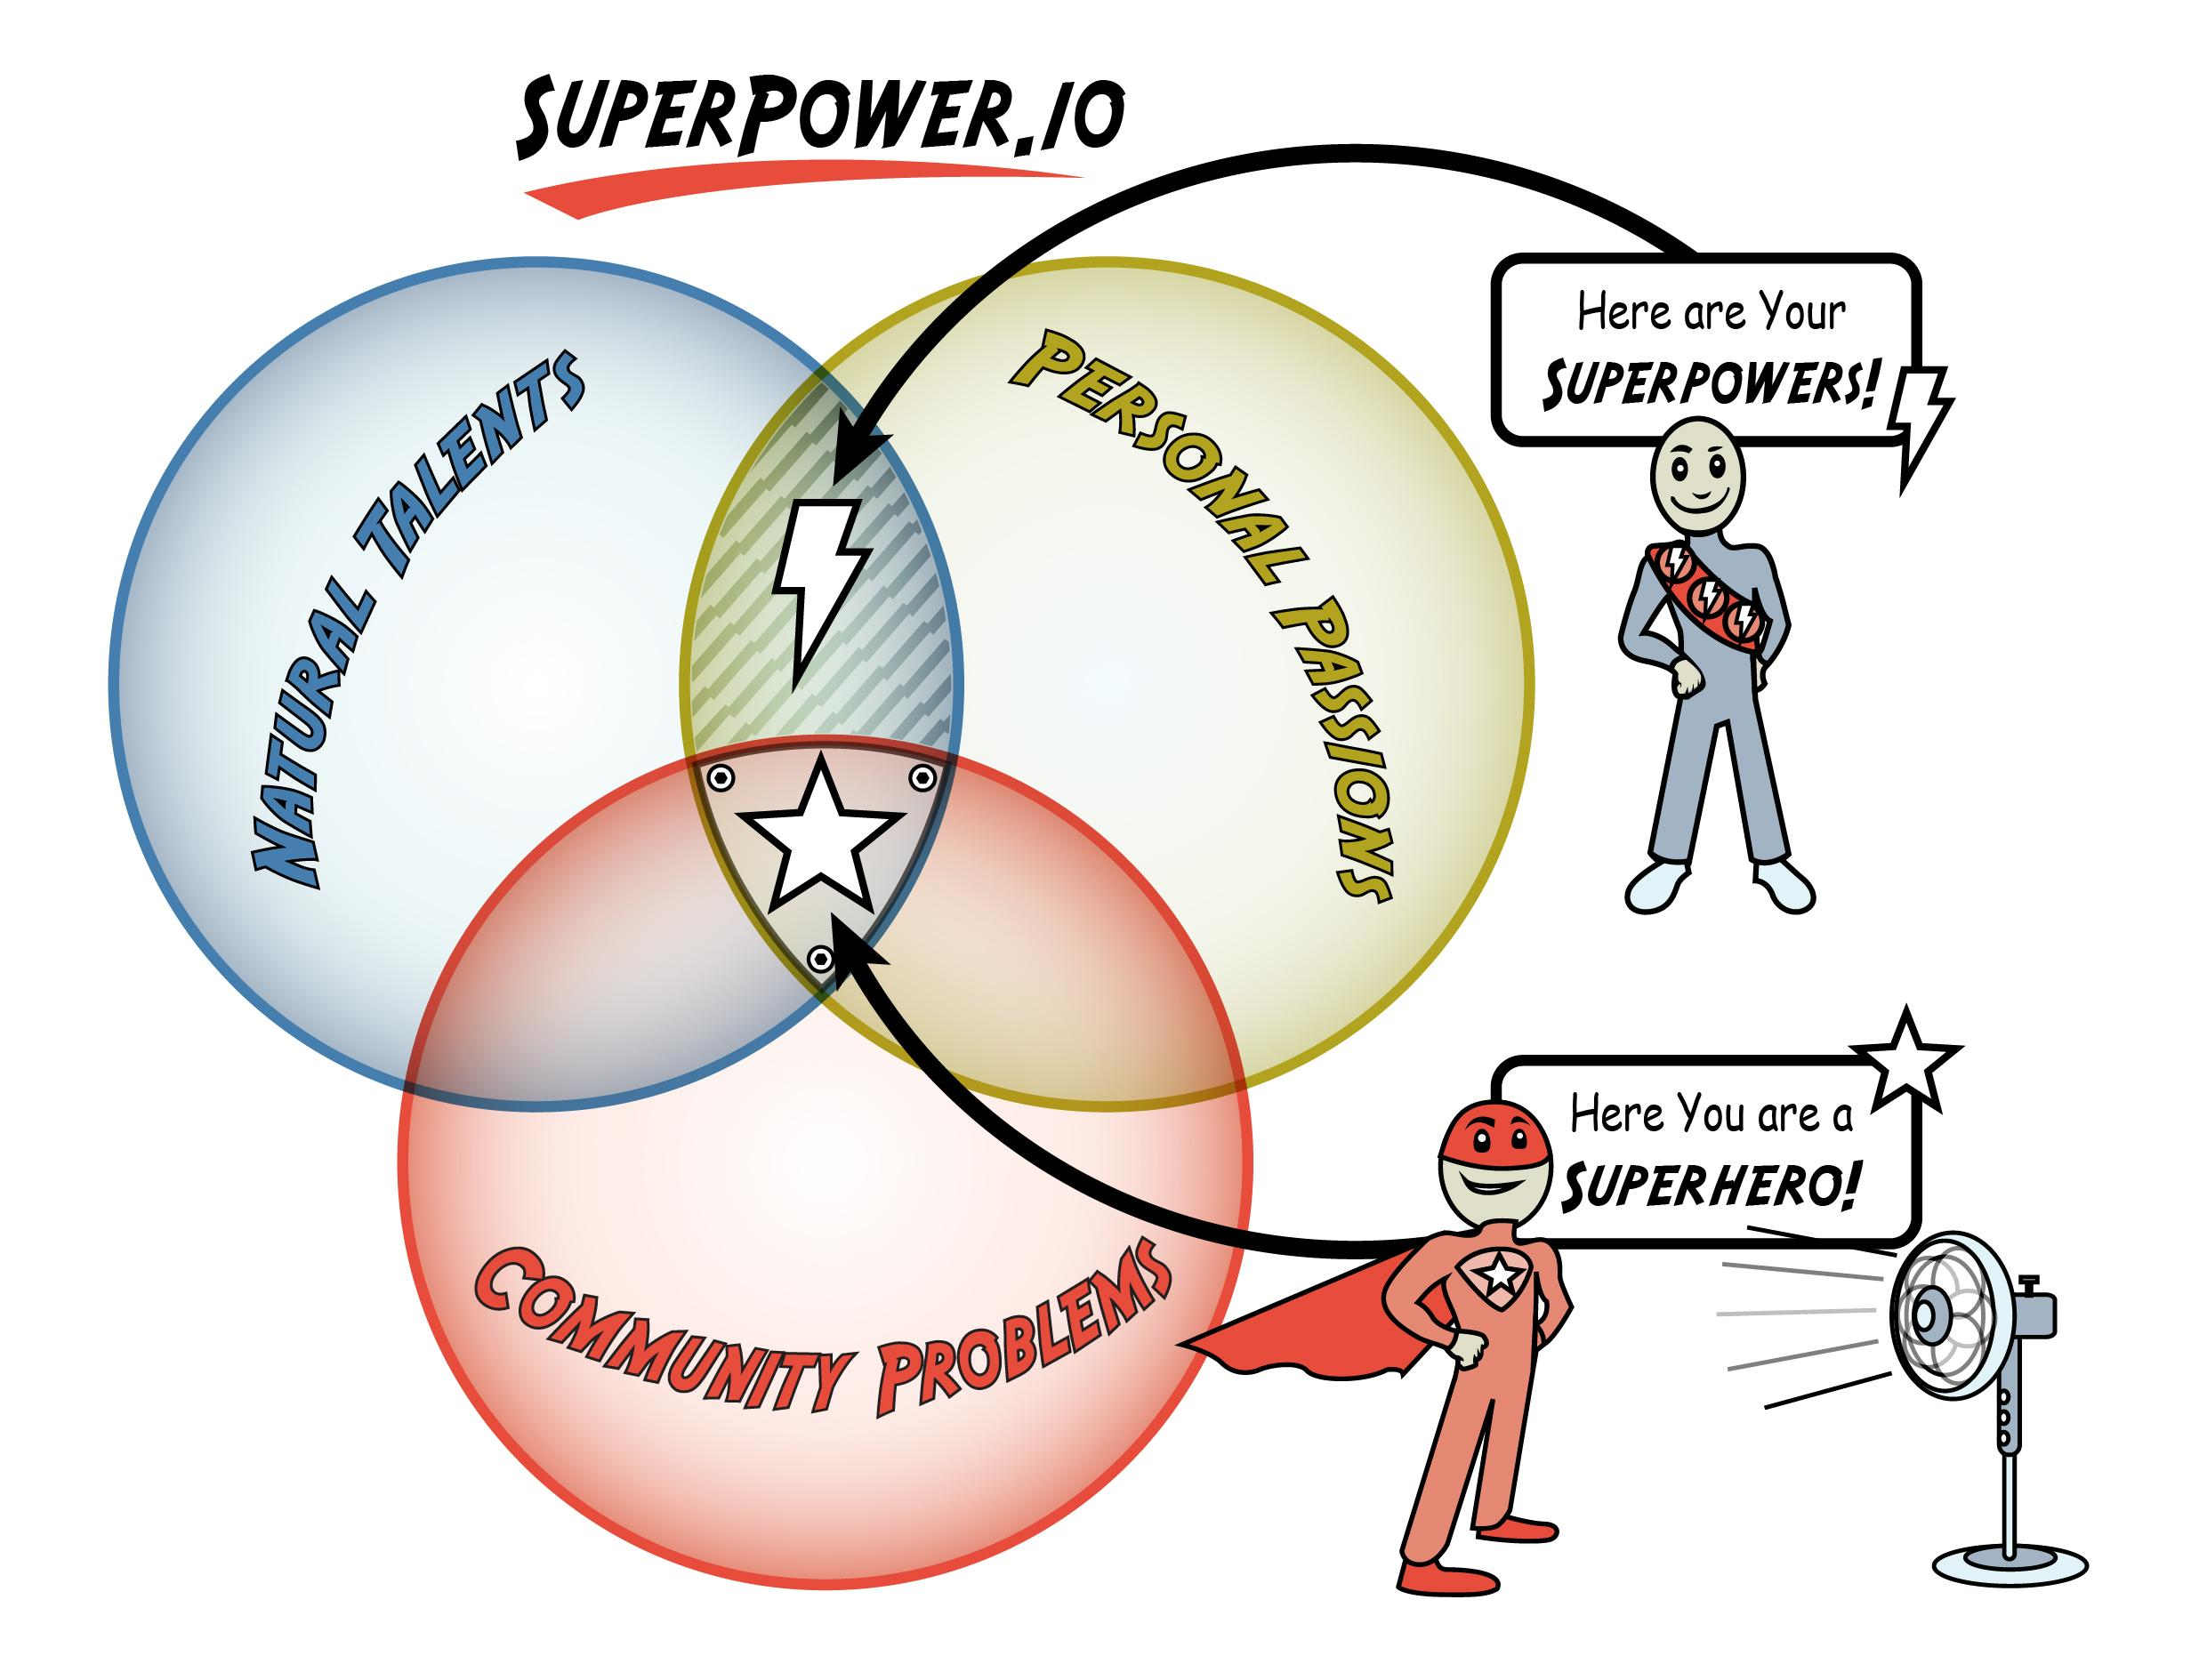 Superpower.IO - image 1 - student project